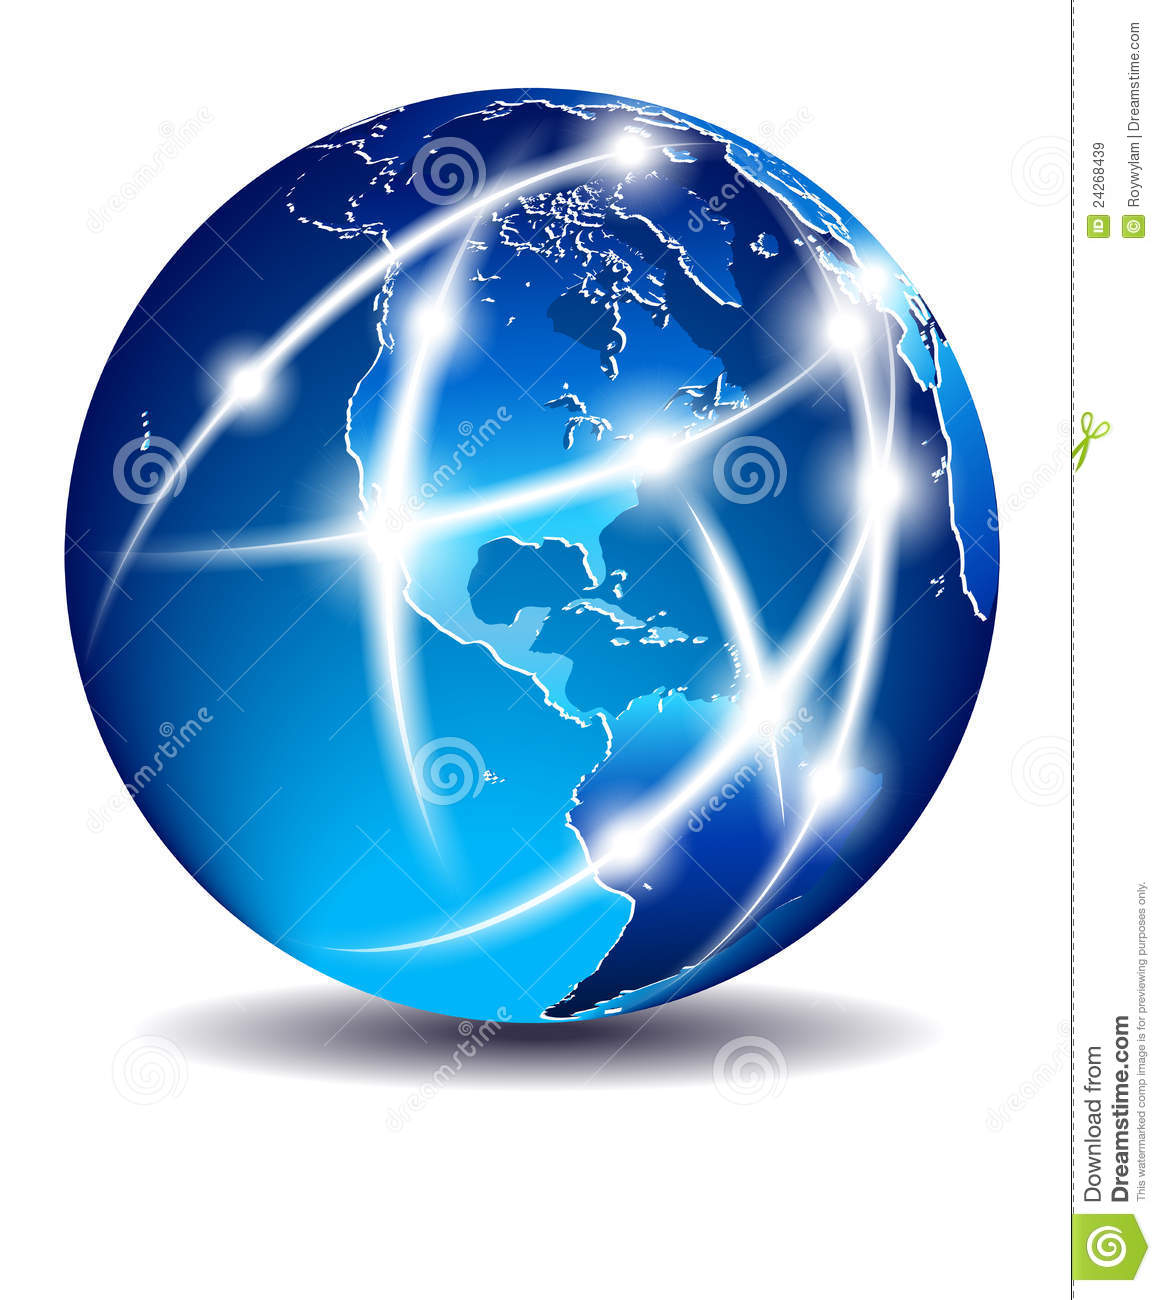 global commerce The topic of this article may not meet wikipedia's notability guidelines for companies and organizations please help to establish notability by citing reliable.